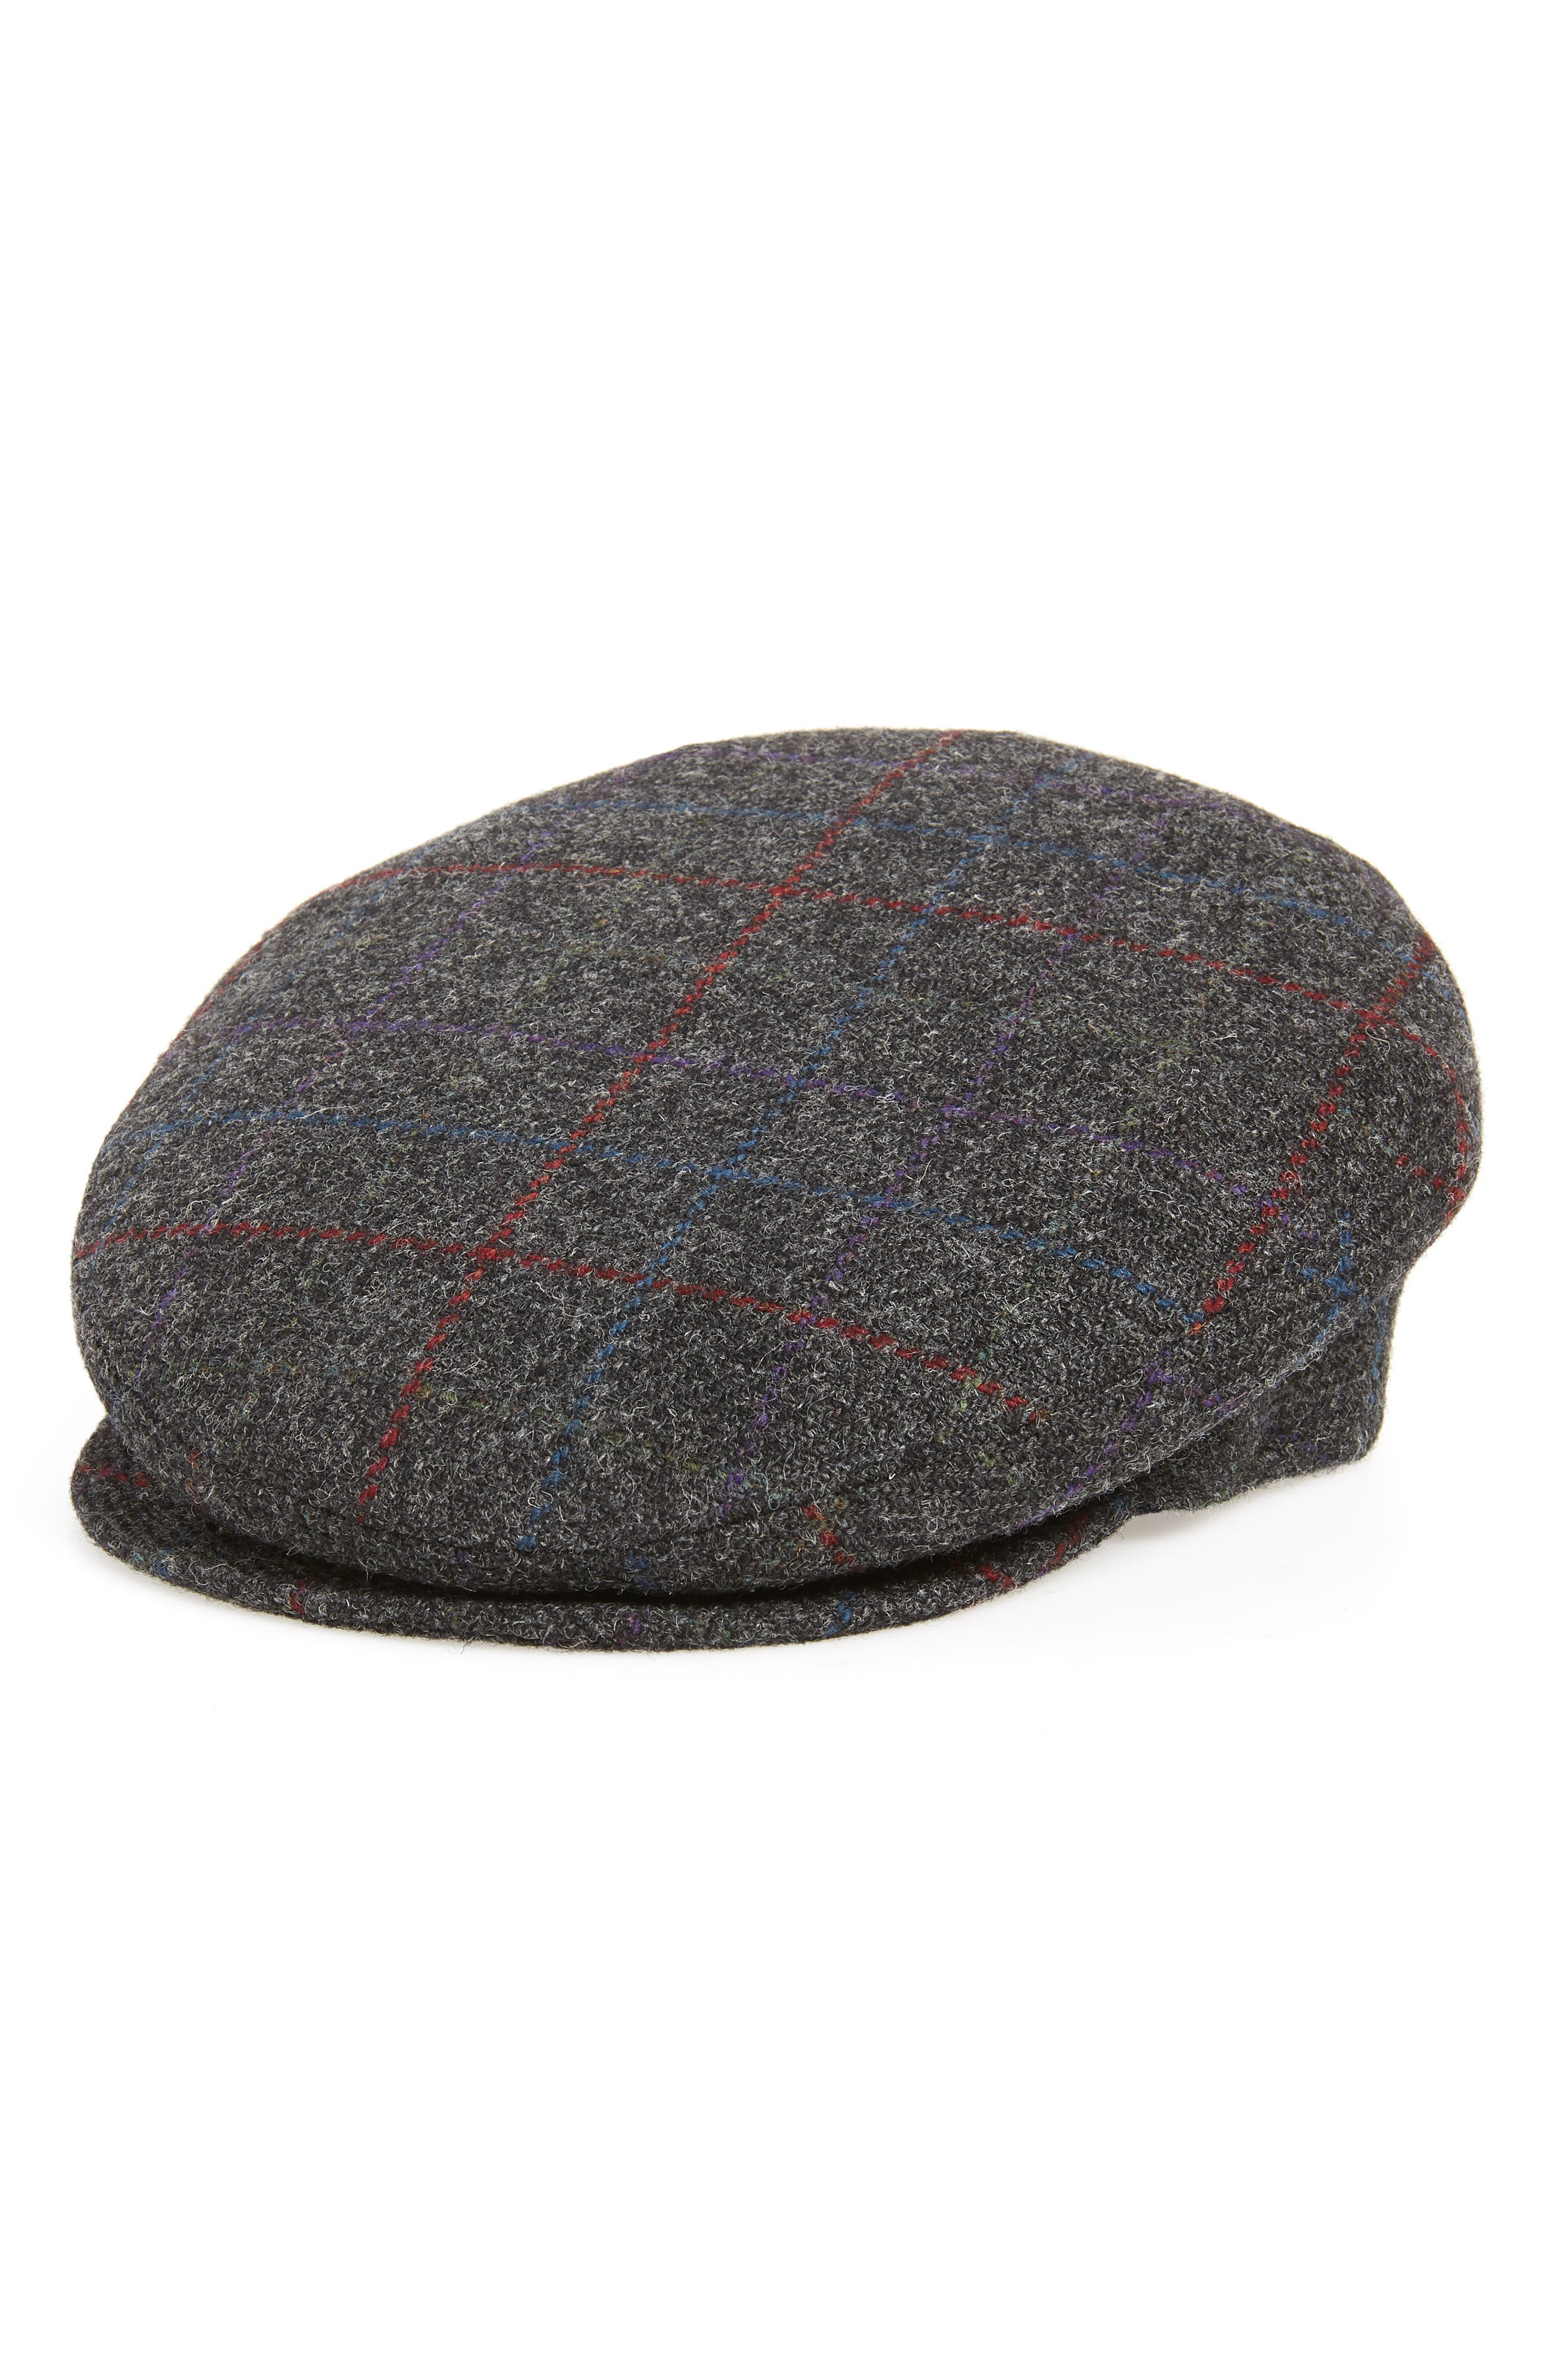 Lord Windowpane Wool Driving Cap,                         Main,                         color, CHARCOAL